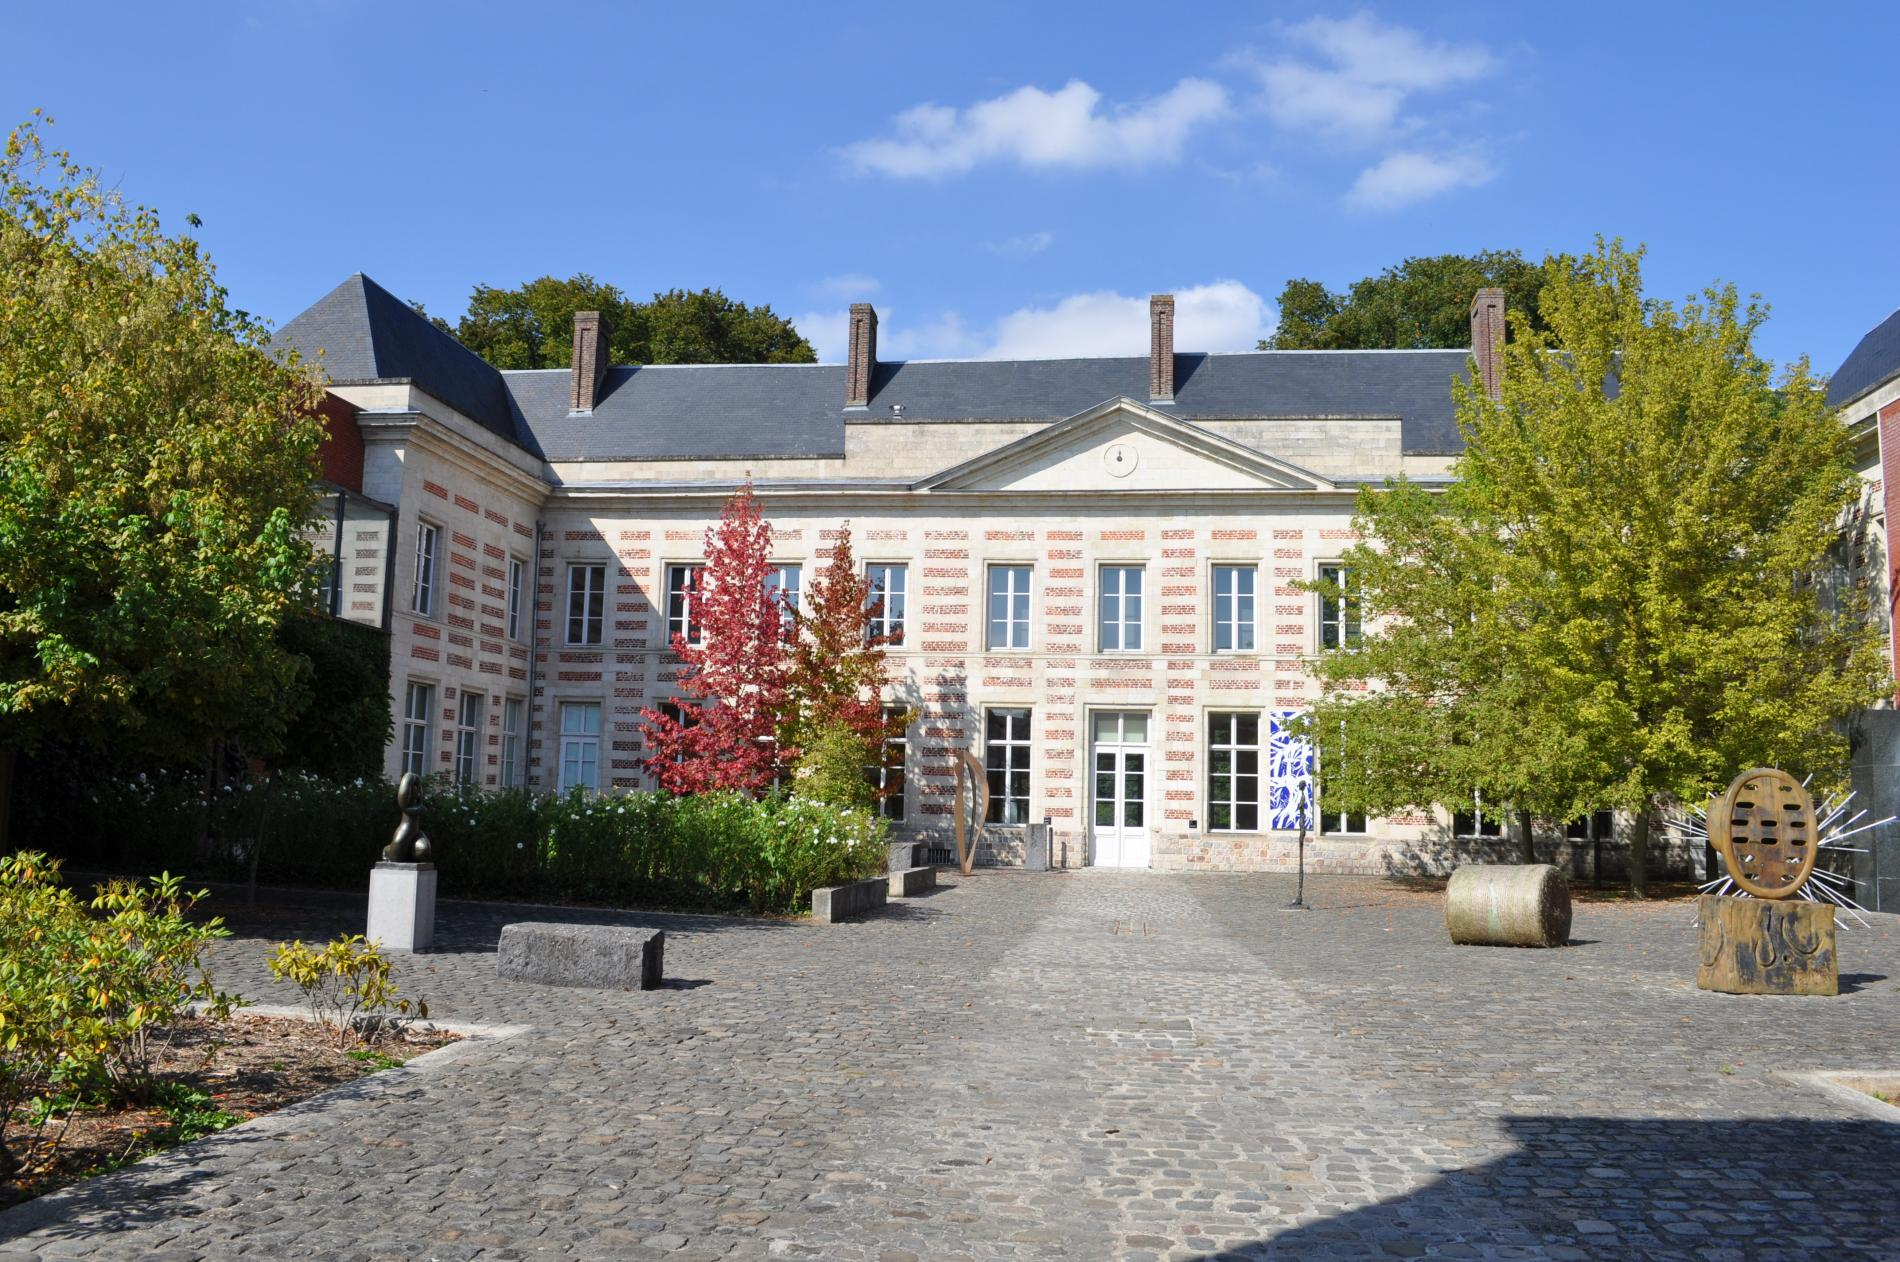 The Matisse Museum